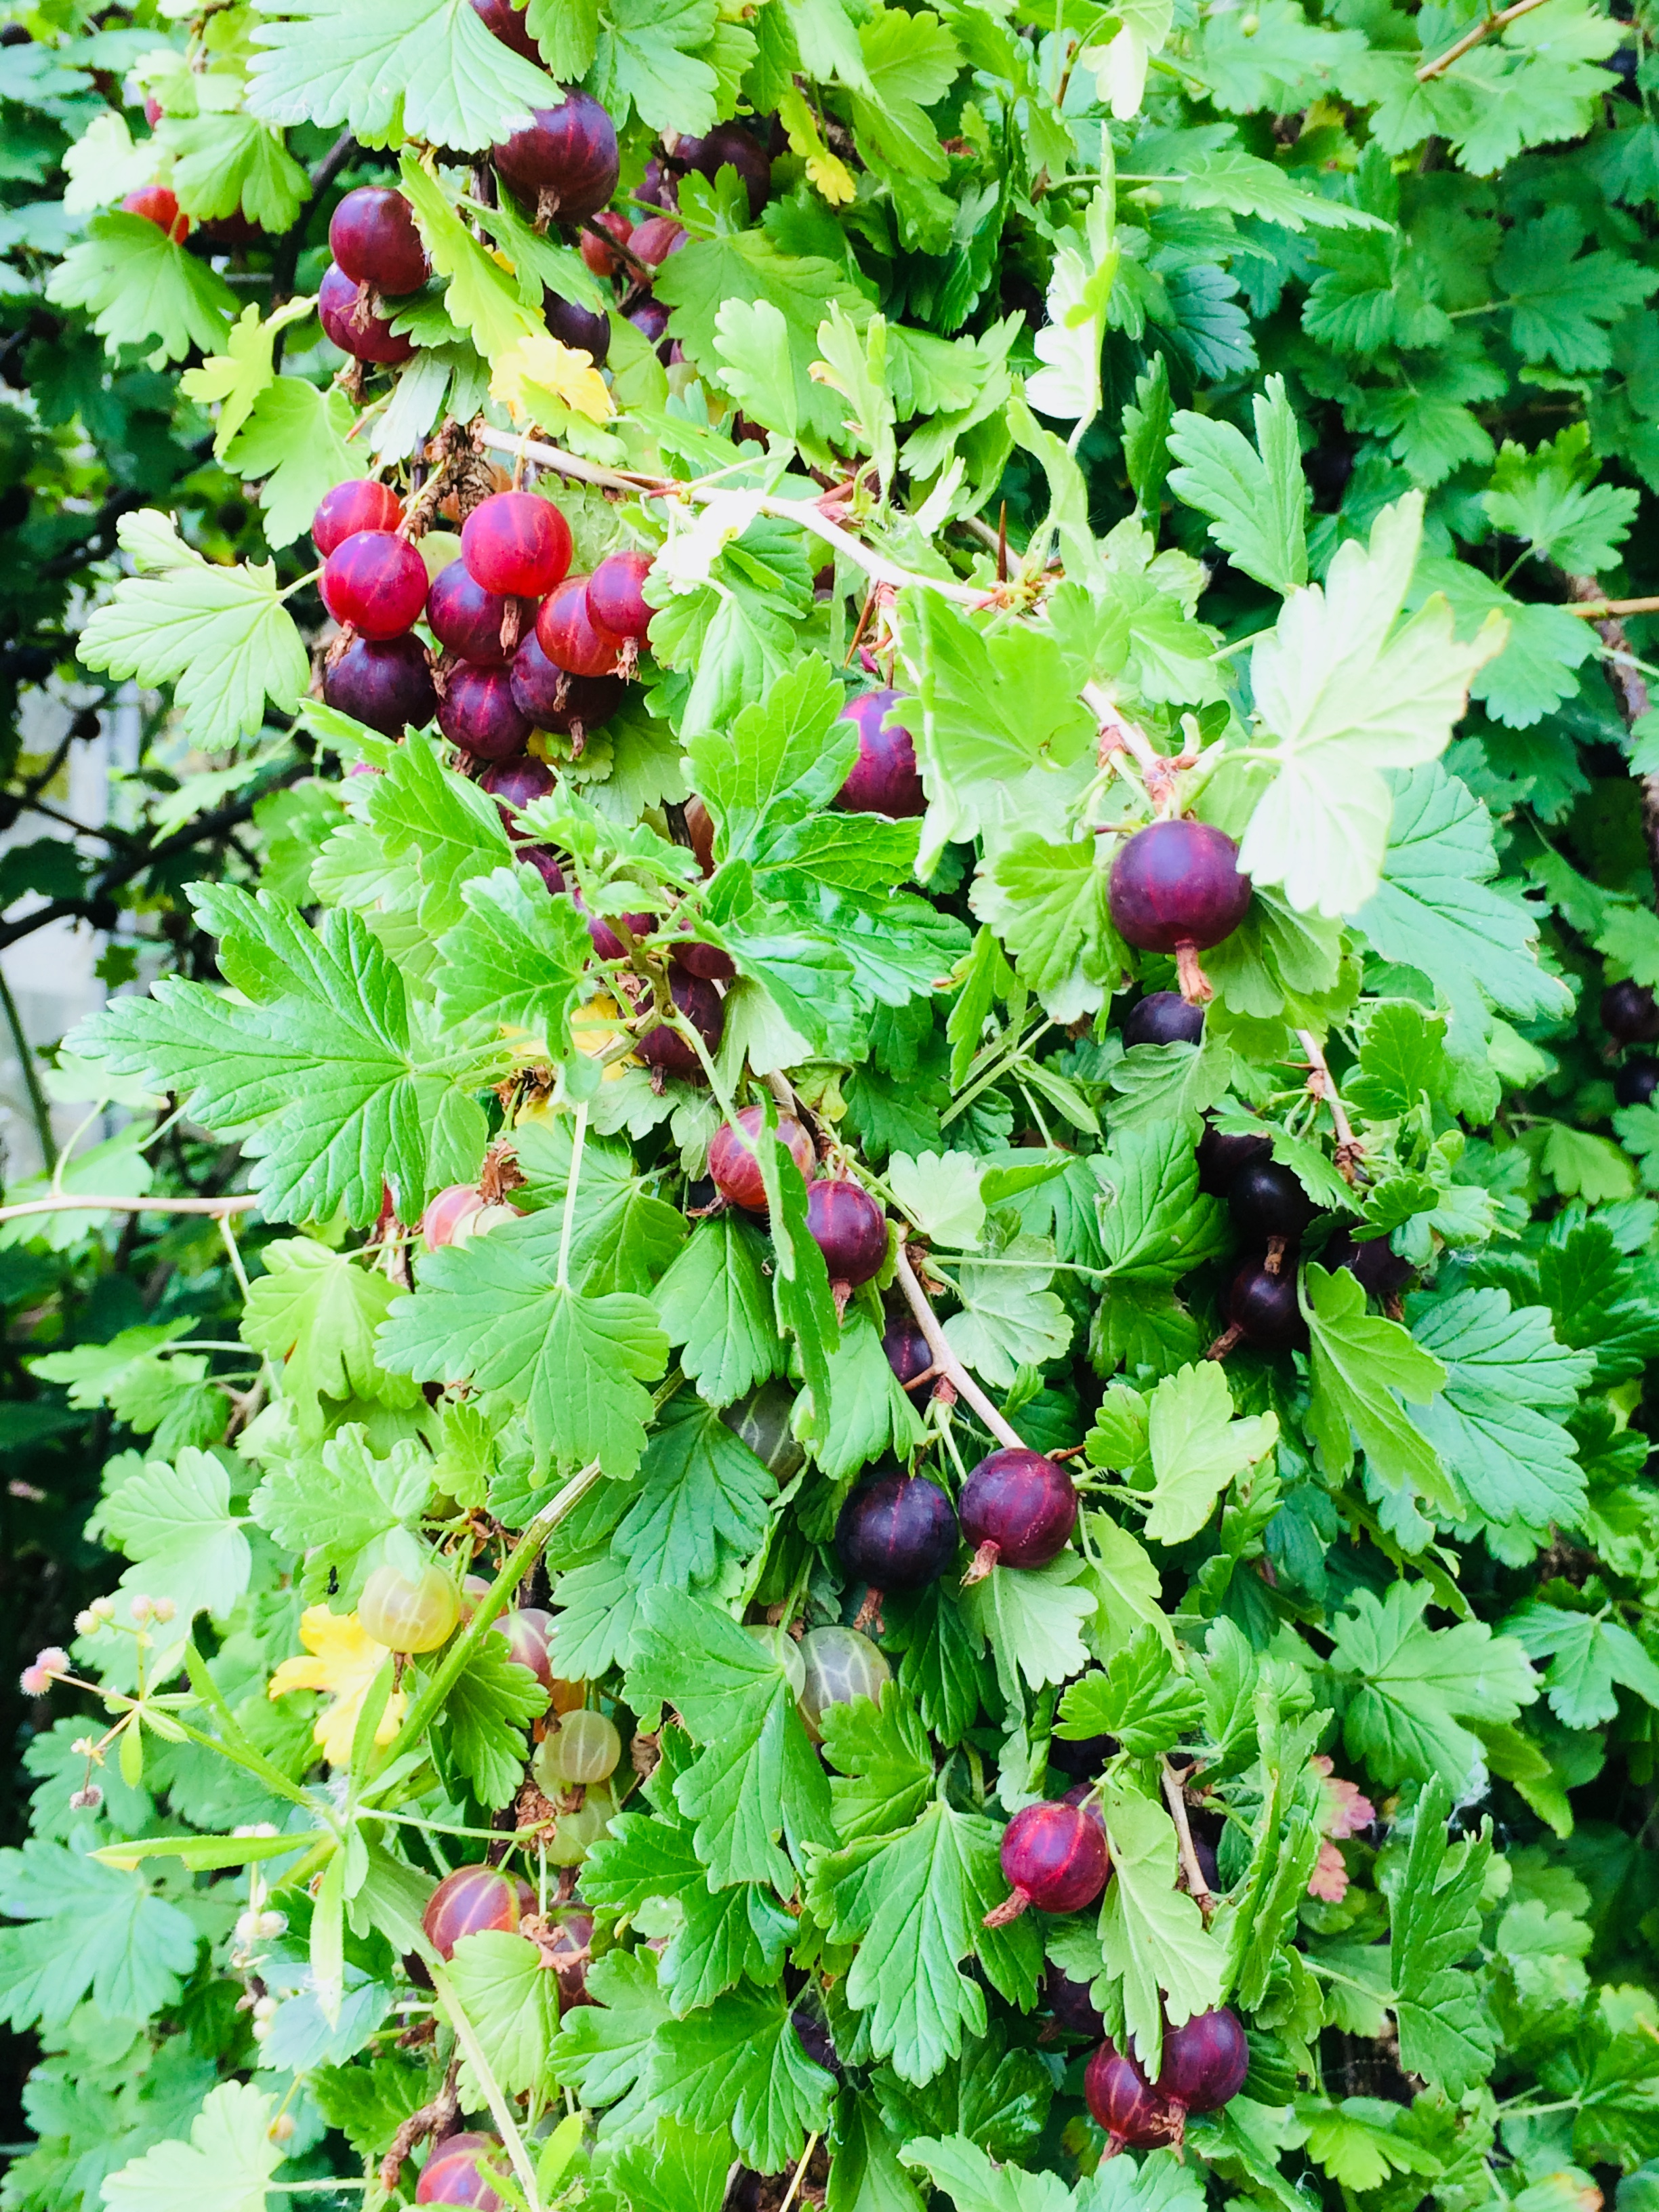 Fruit in garden.jpg